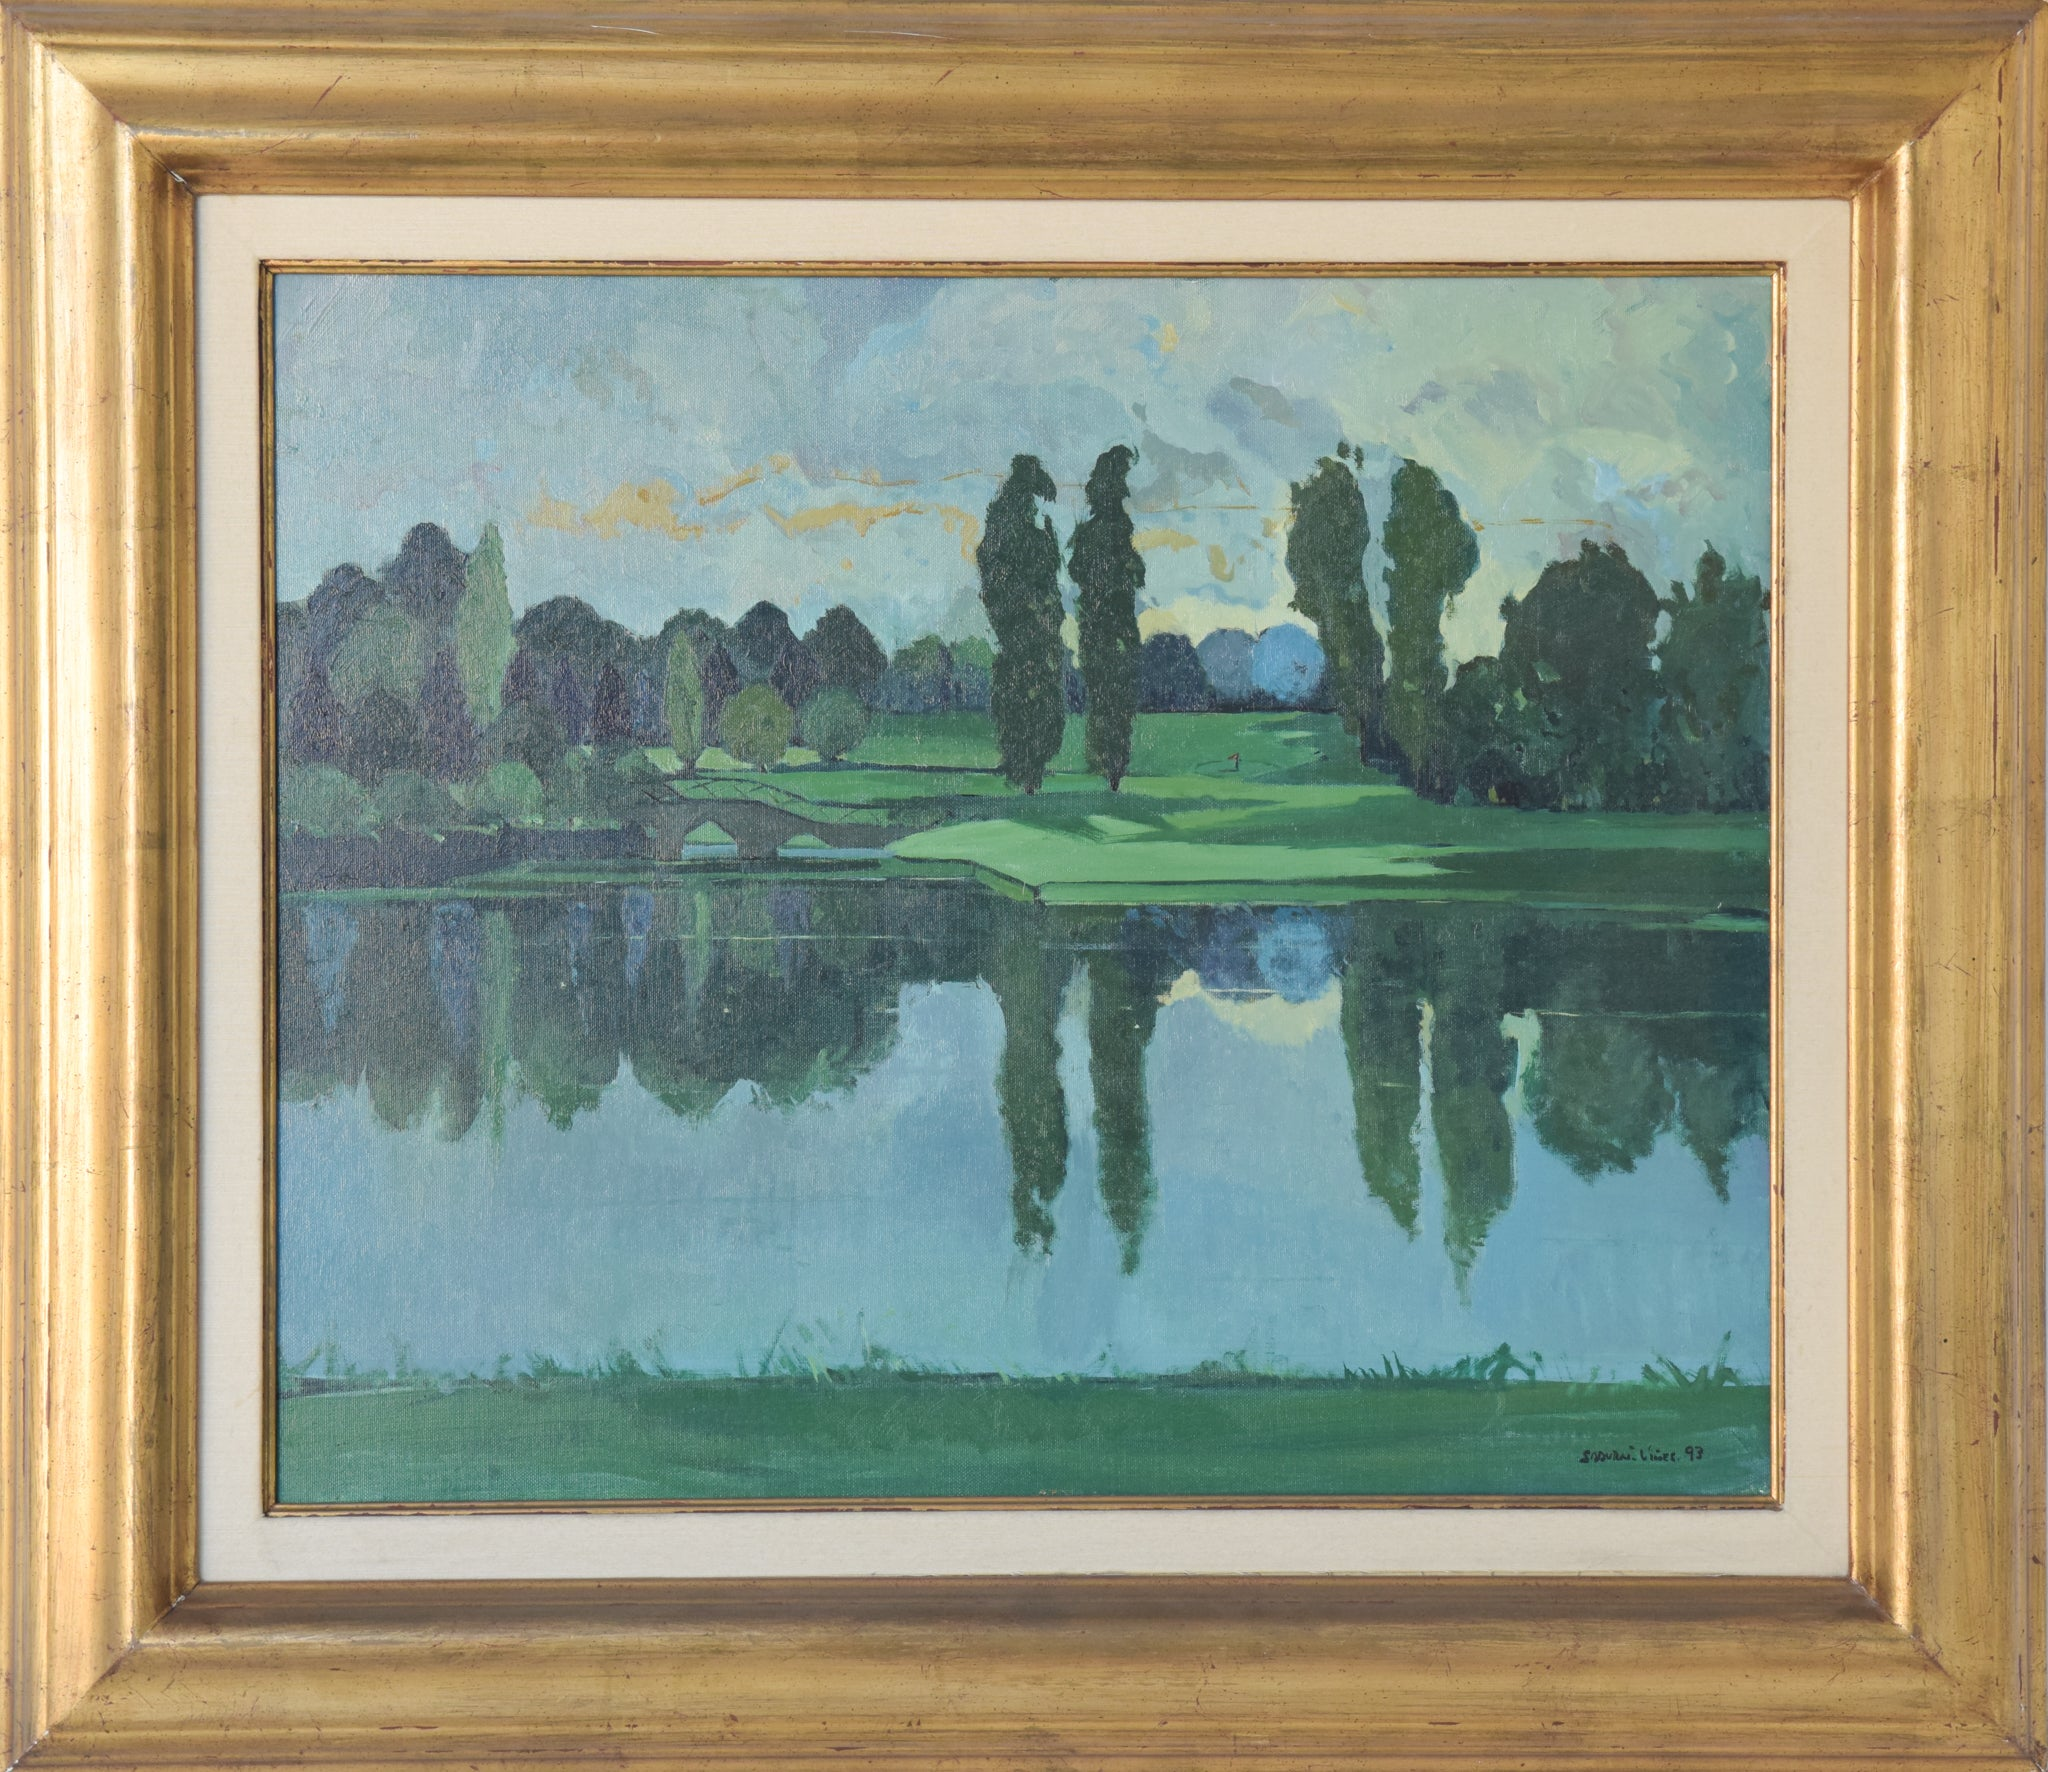 Reflections on the River - Landscape Painting_Framed